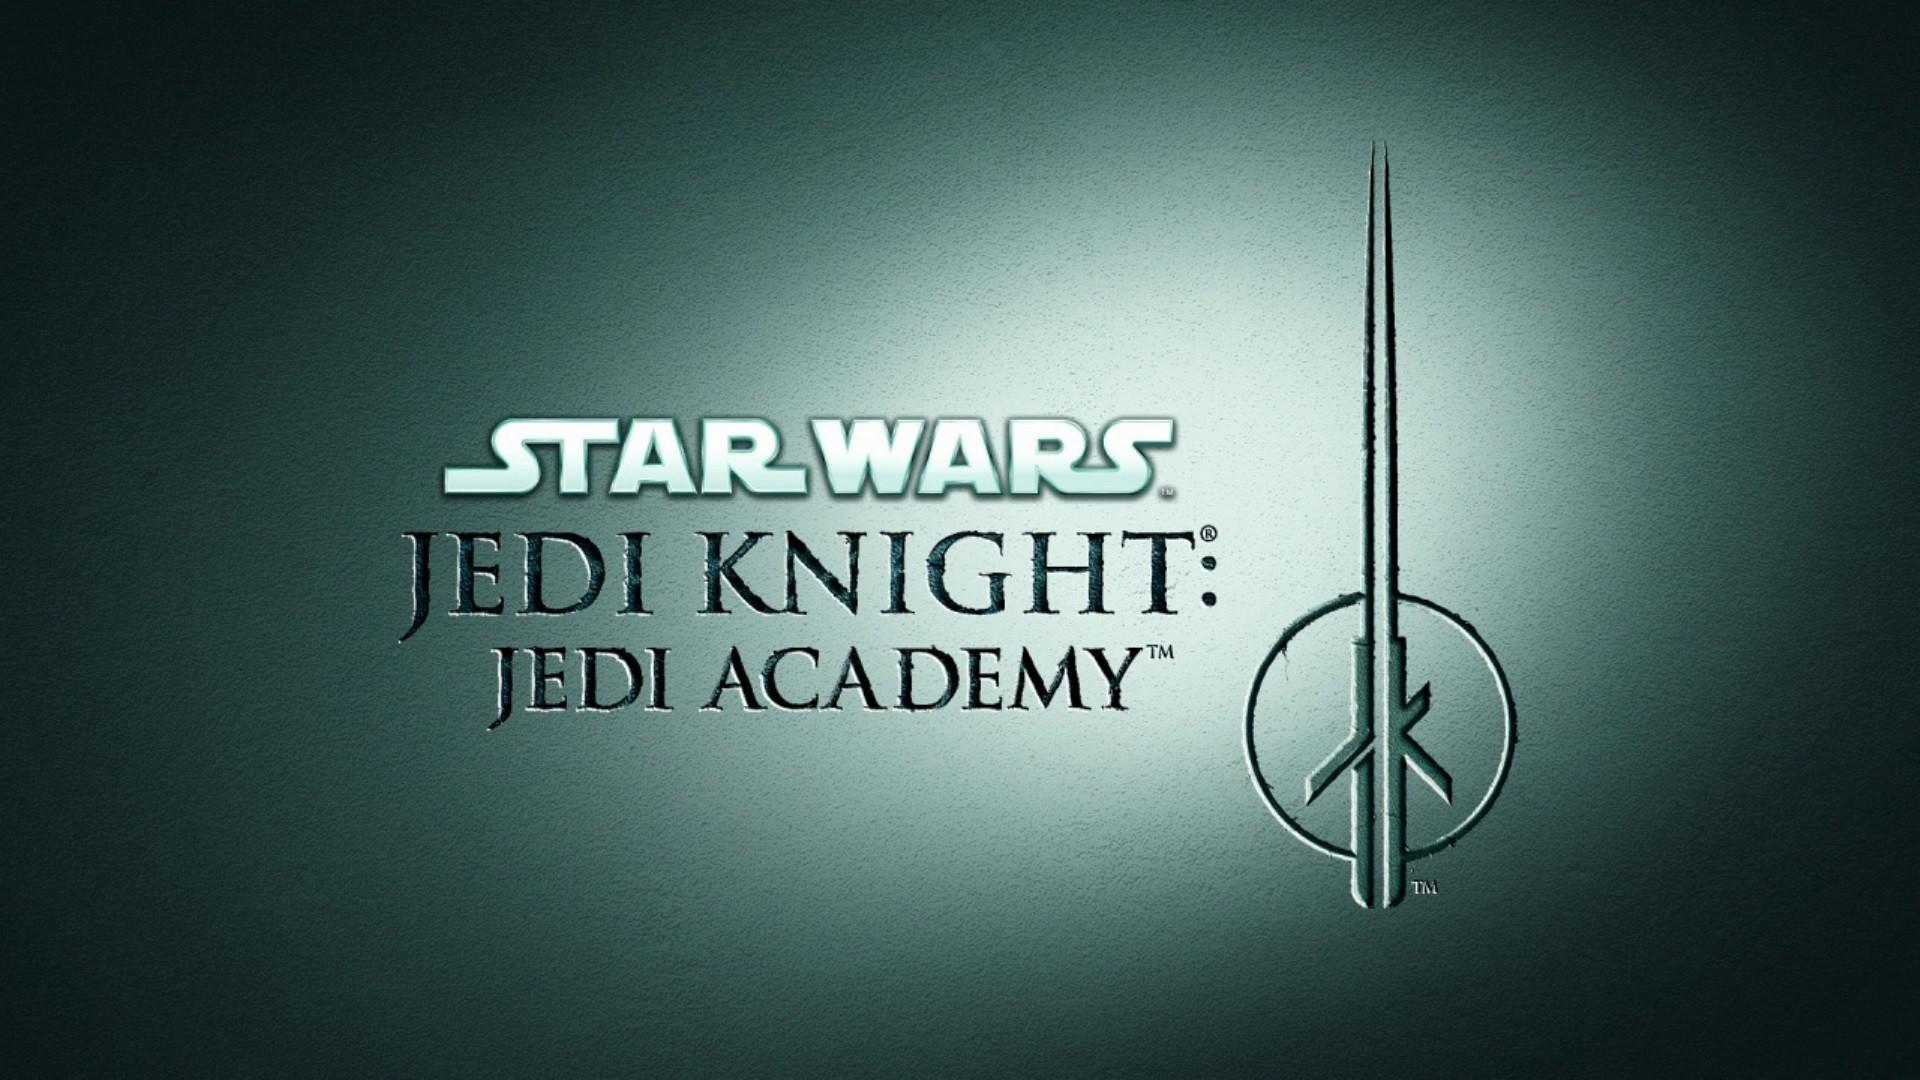 Слух: Сегодня в eShop выйдет Star Wars Jedi Knight: Jedi Academy 104